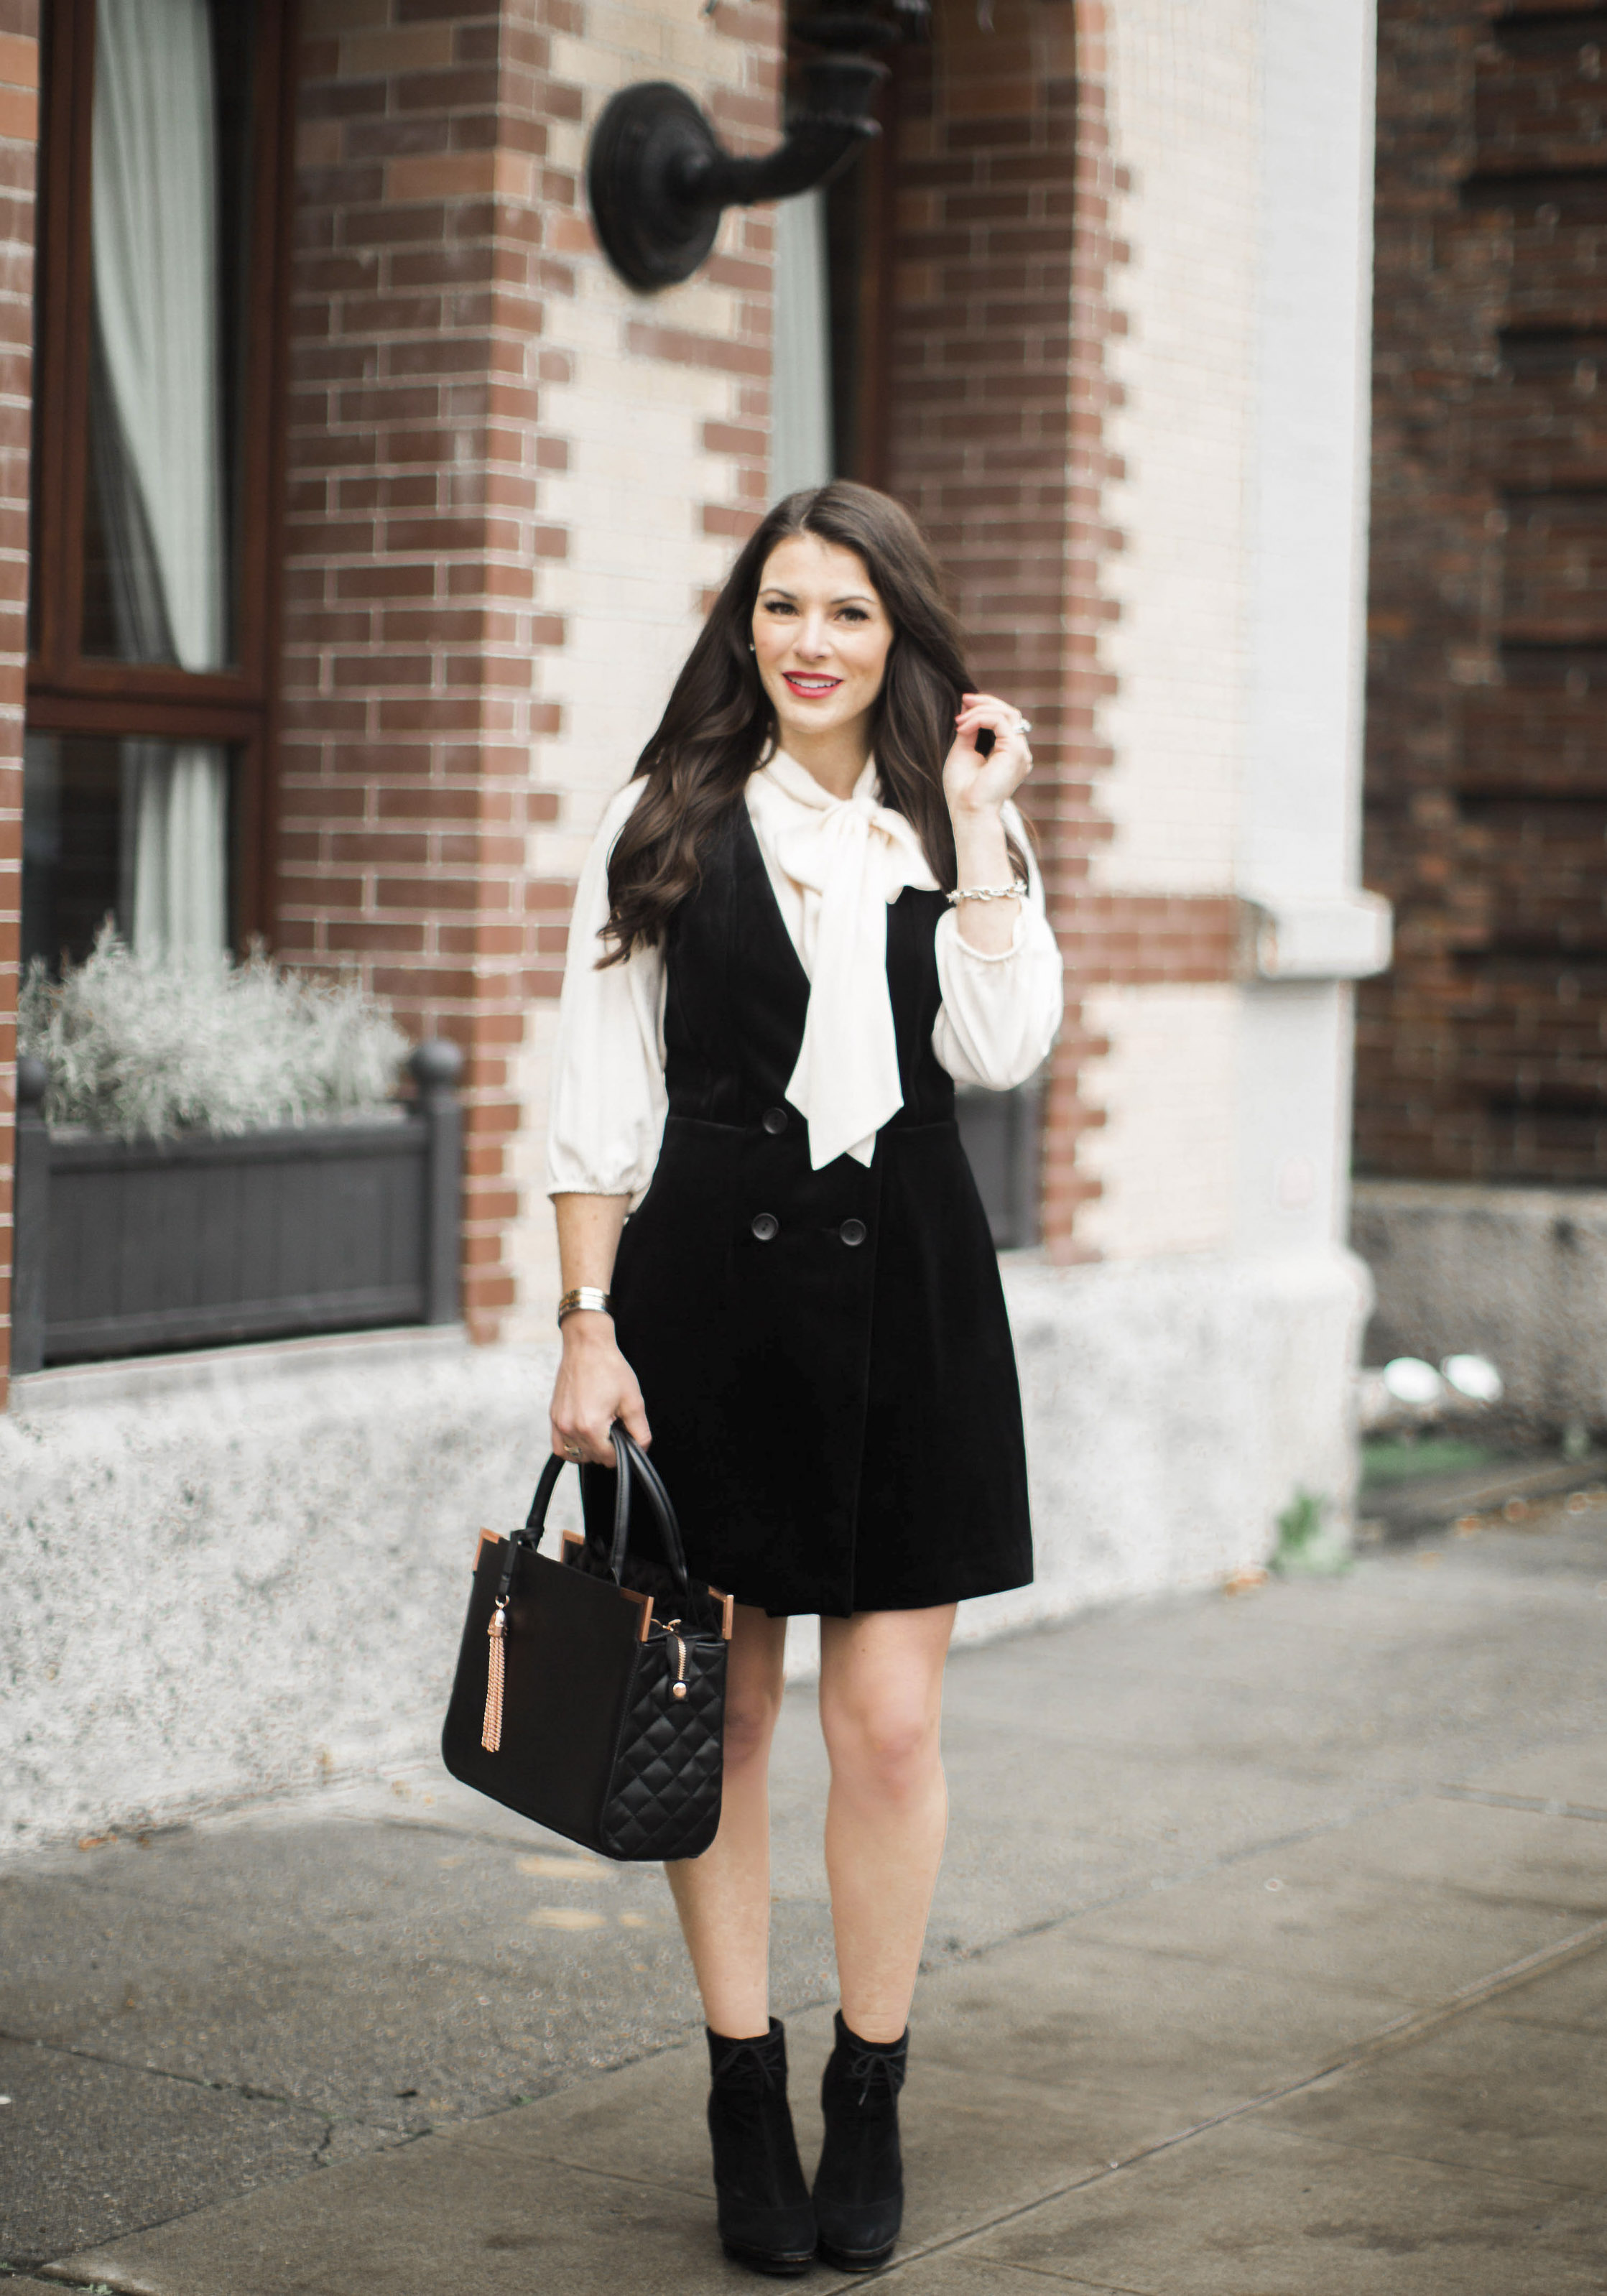 Holiday dress for work and a night out, Greylin velvet tuxedo dress, Leith Tie Neck Blouse, Black Booties, Steve Madden Bryrony Lace Up Pumps, Faux Fur Jacket.